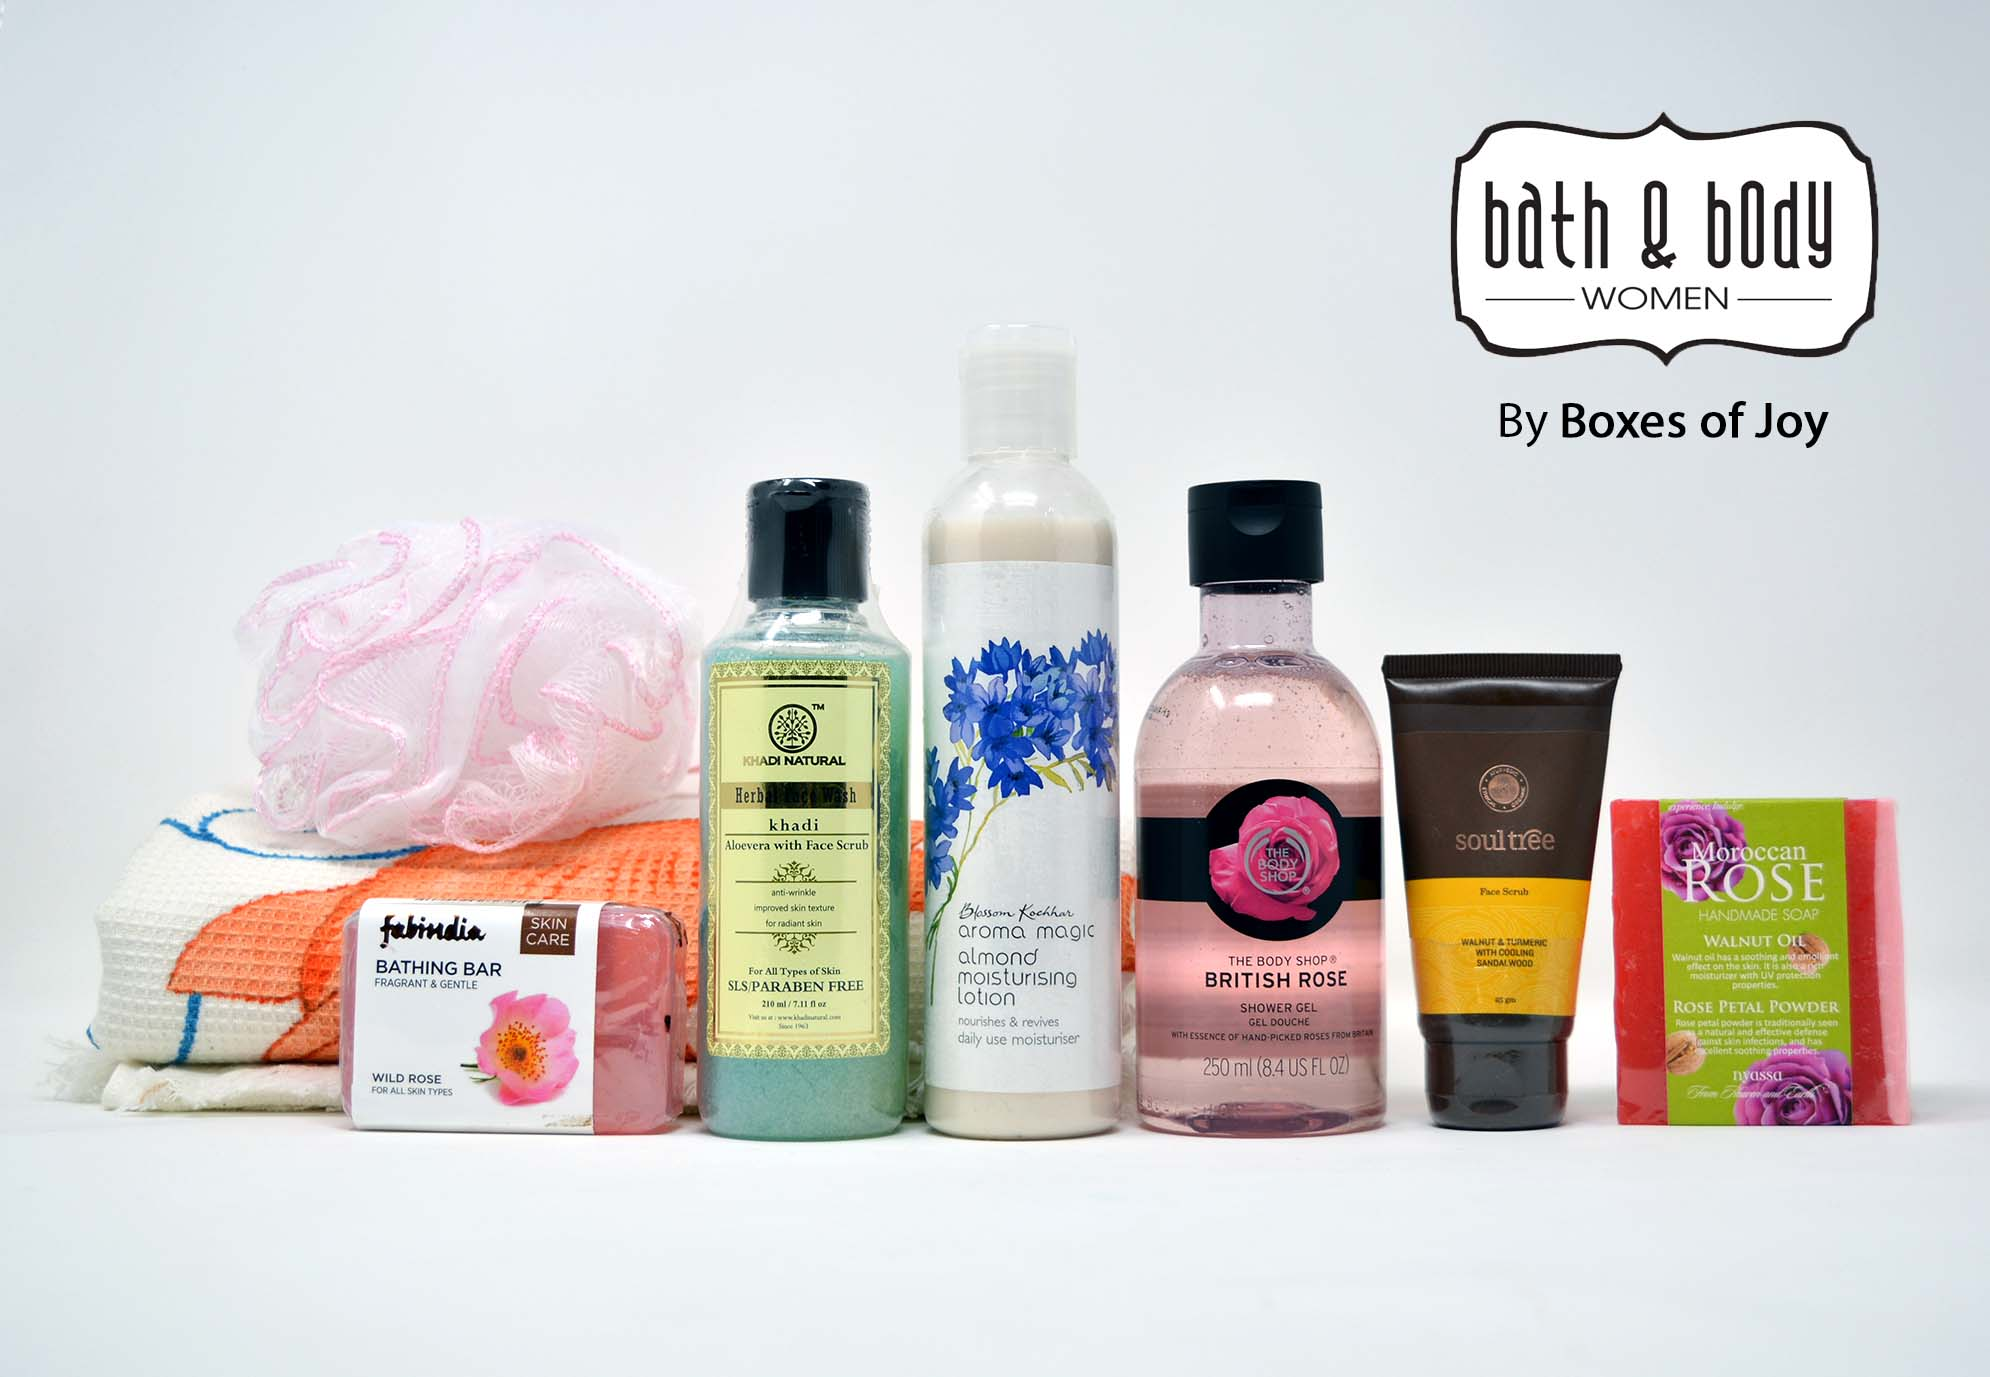 Bath & Body Box For Women - Aug 2018